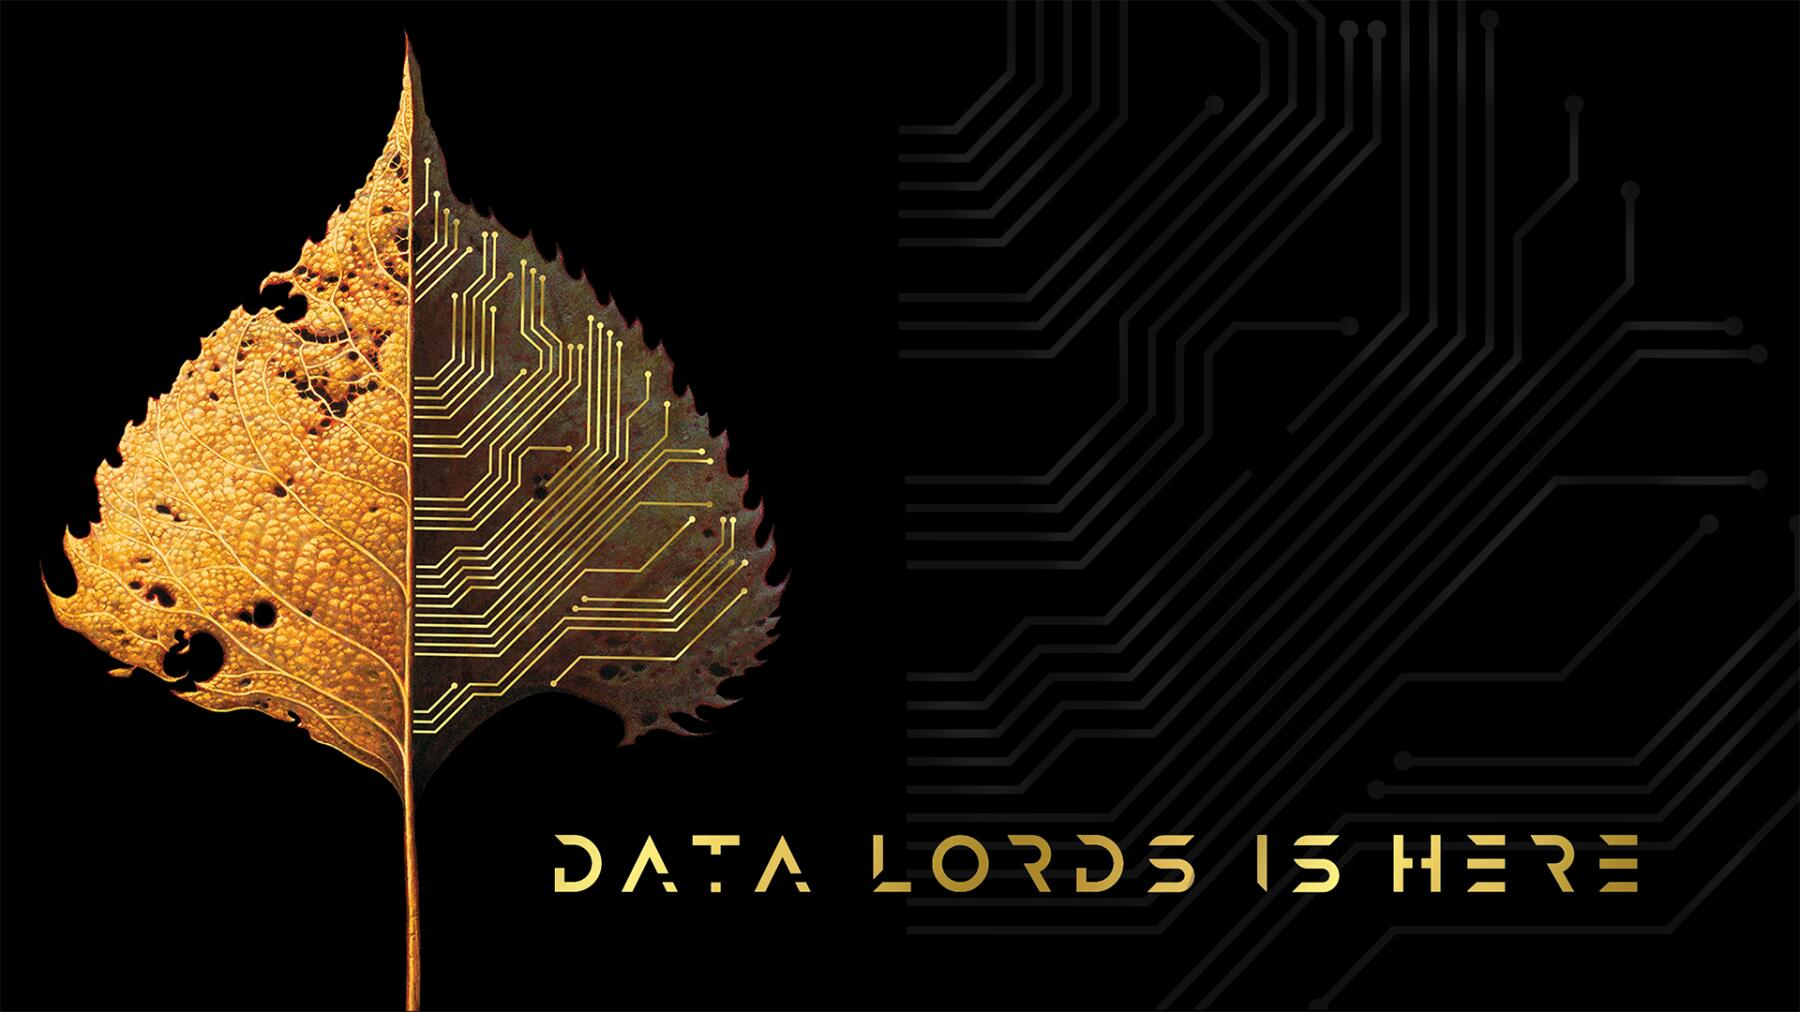 Data Lords